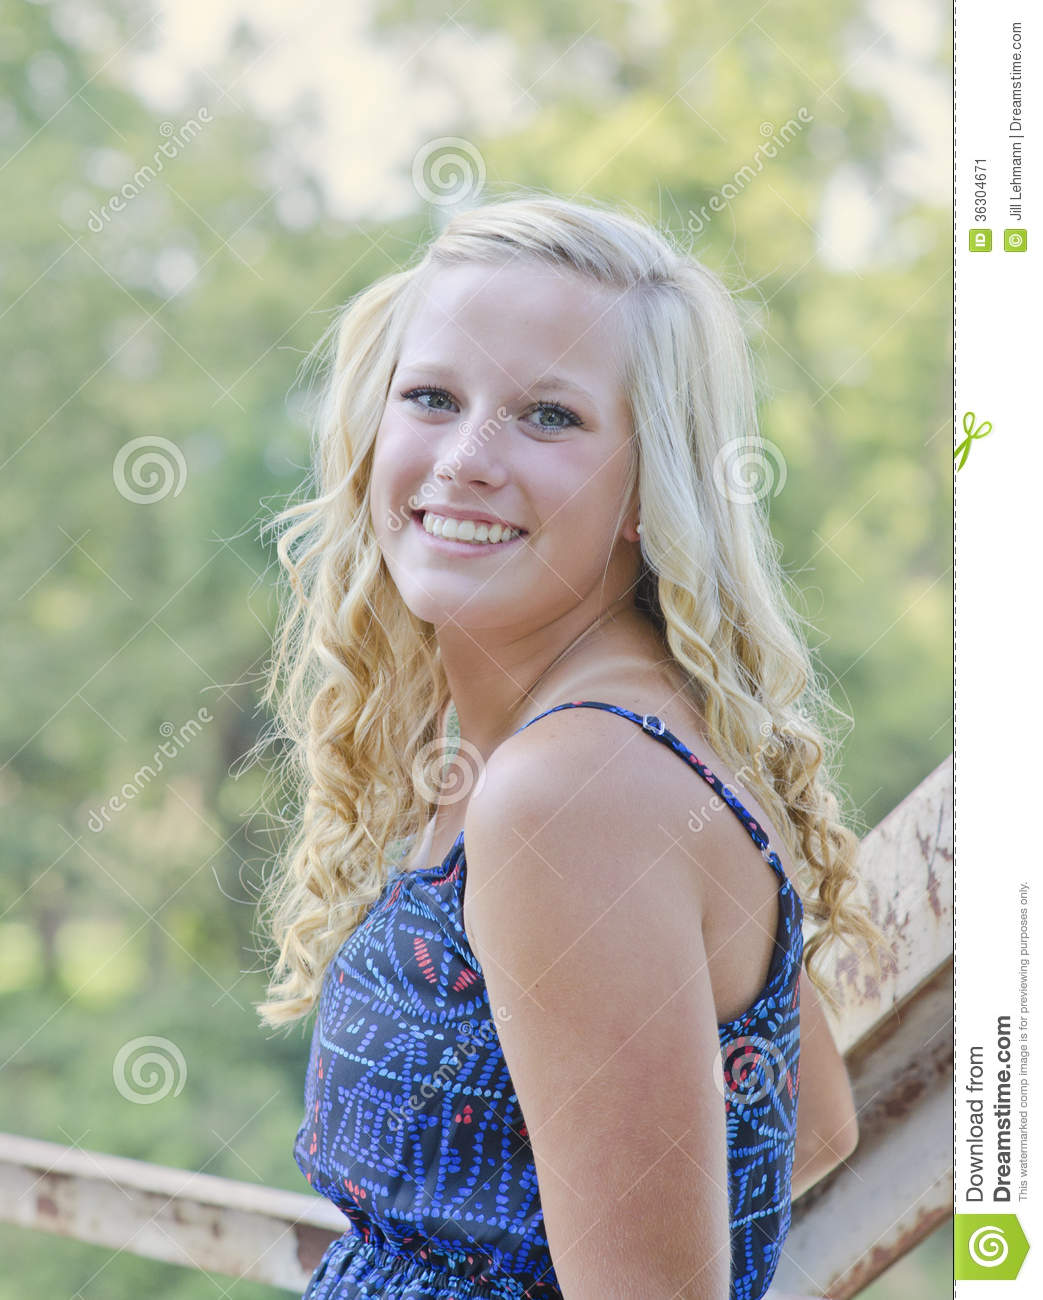 evensville senior singles Online dating in evansville for free  dating online classy, sassy and a bit  smart assy i'm just looking to have a connection that isn't forced, that's it.